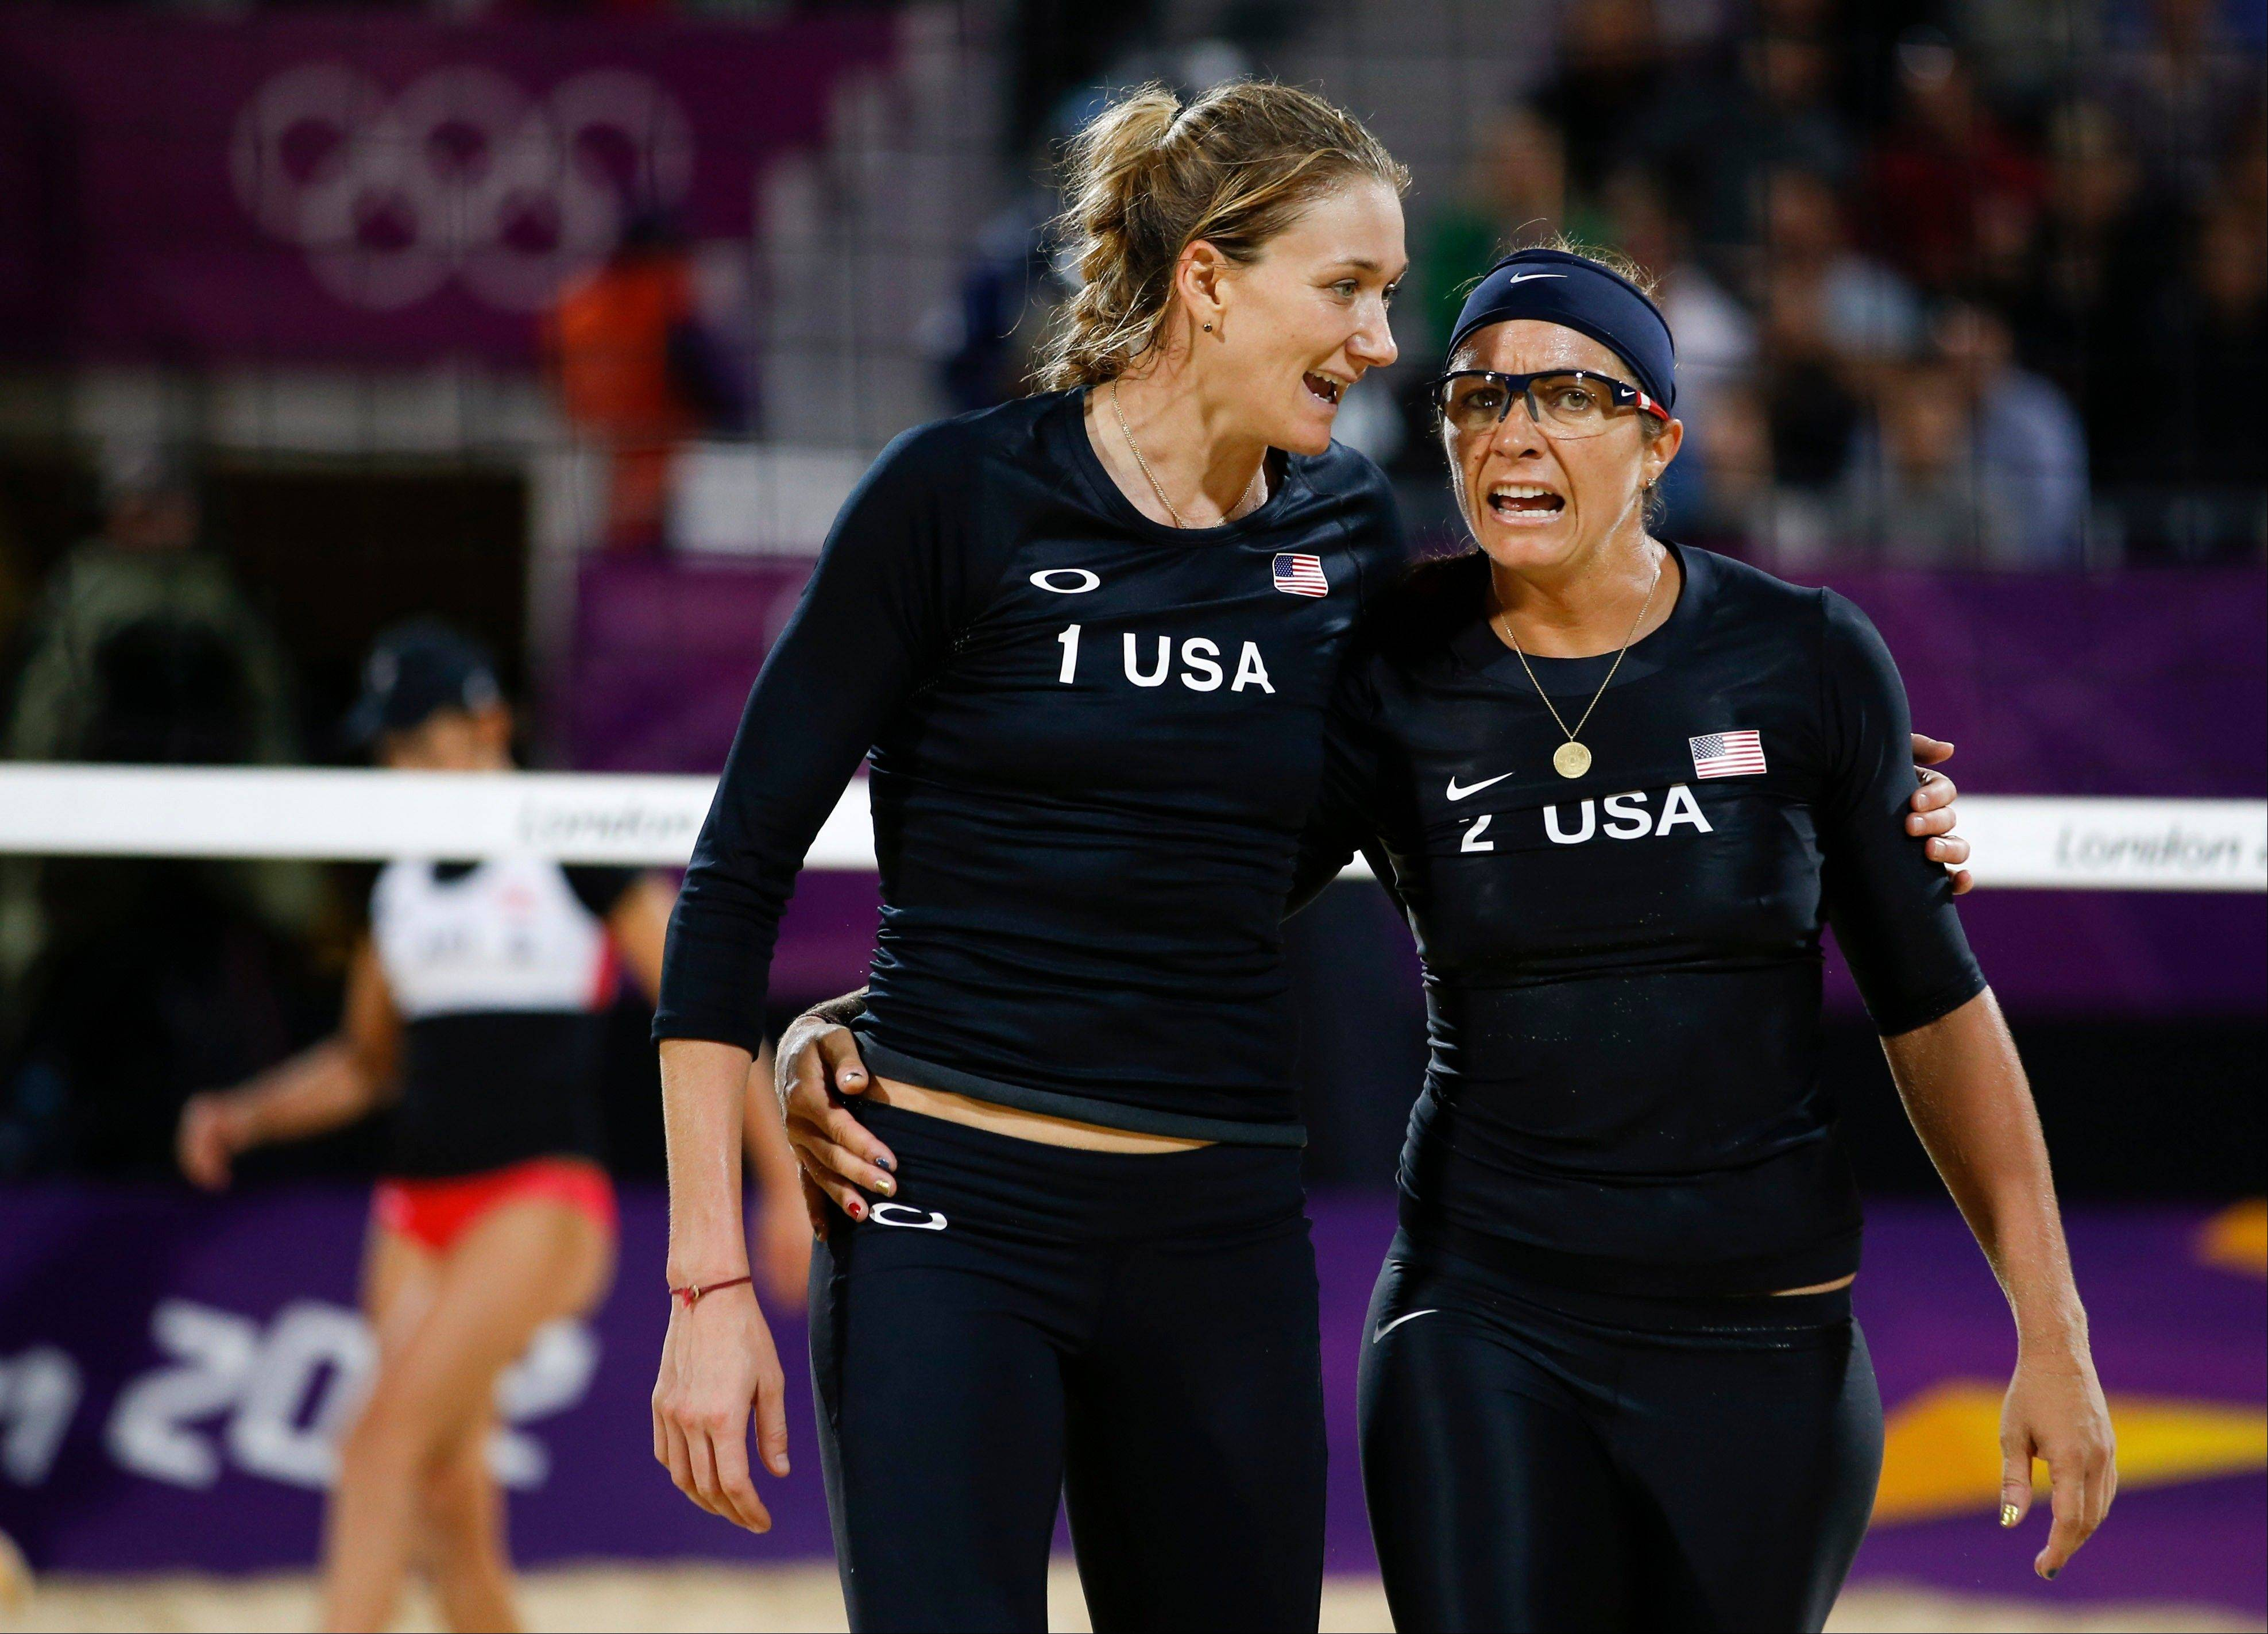 United States' Kerri Walsh, left, and Misty May-Treanor chat during a beach volleyball match against Austria's Doris Schwaiger and Stefanie Schwaiger at the 2012